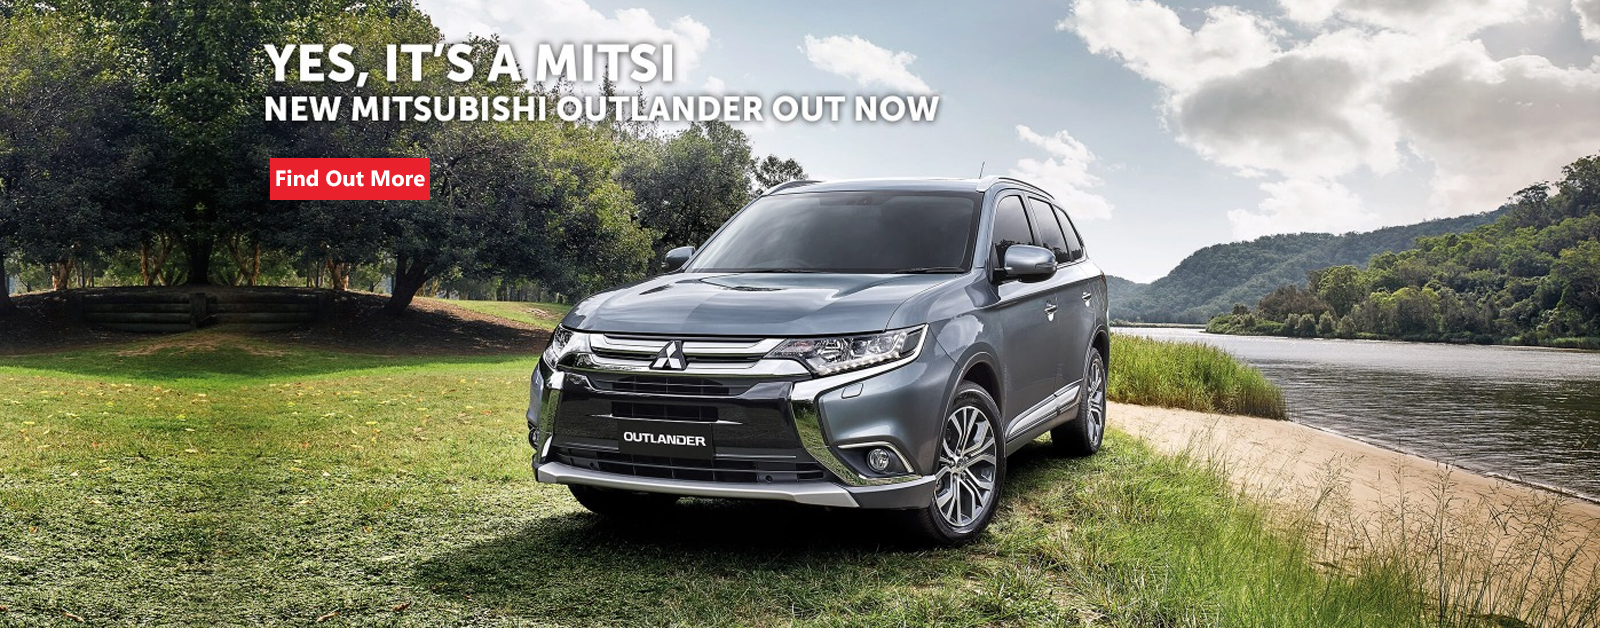 Yes, it's a Mitsi! New Mitsubishi Outlander out now and available at Redcliffe Mitsubishi Brisbane.